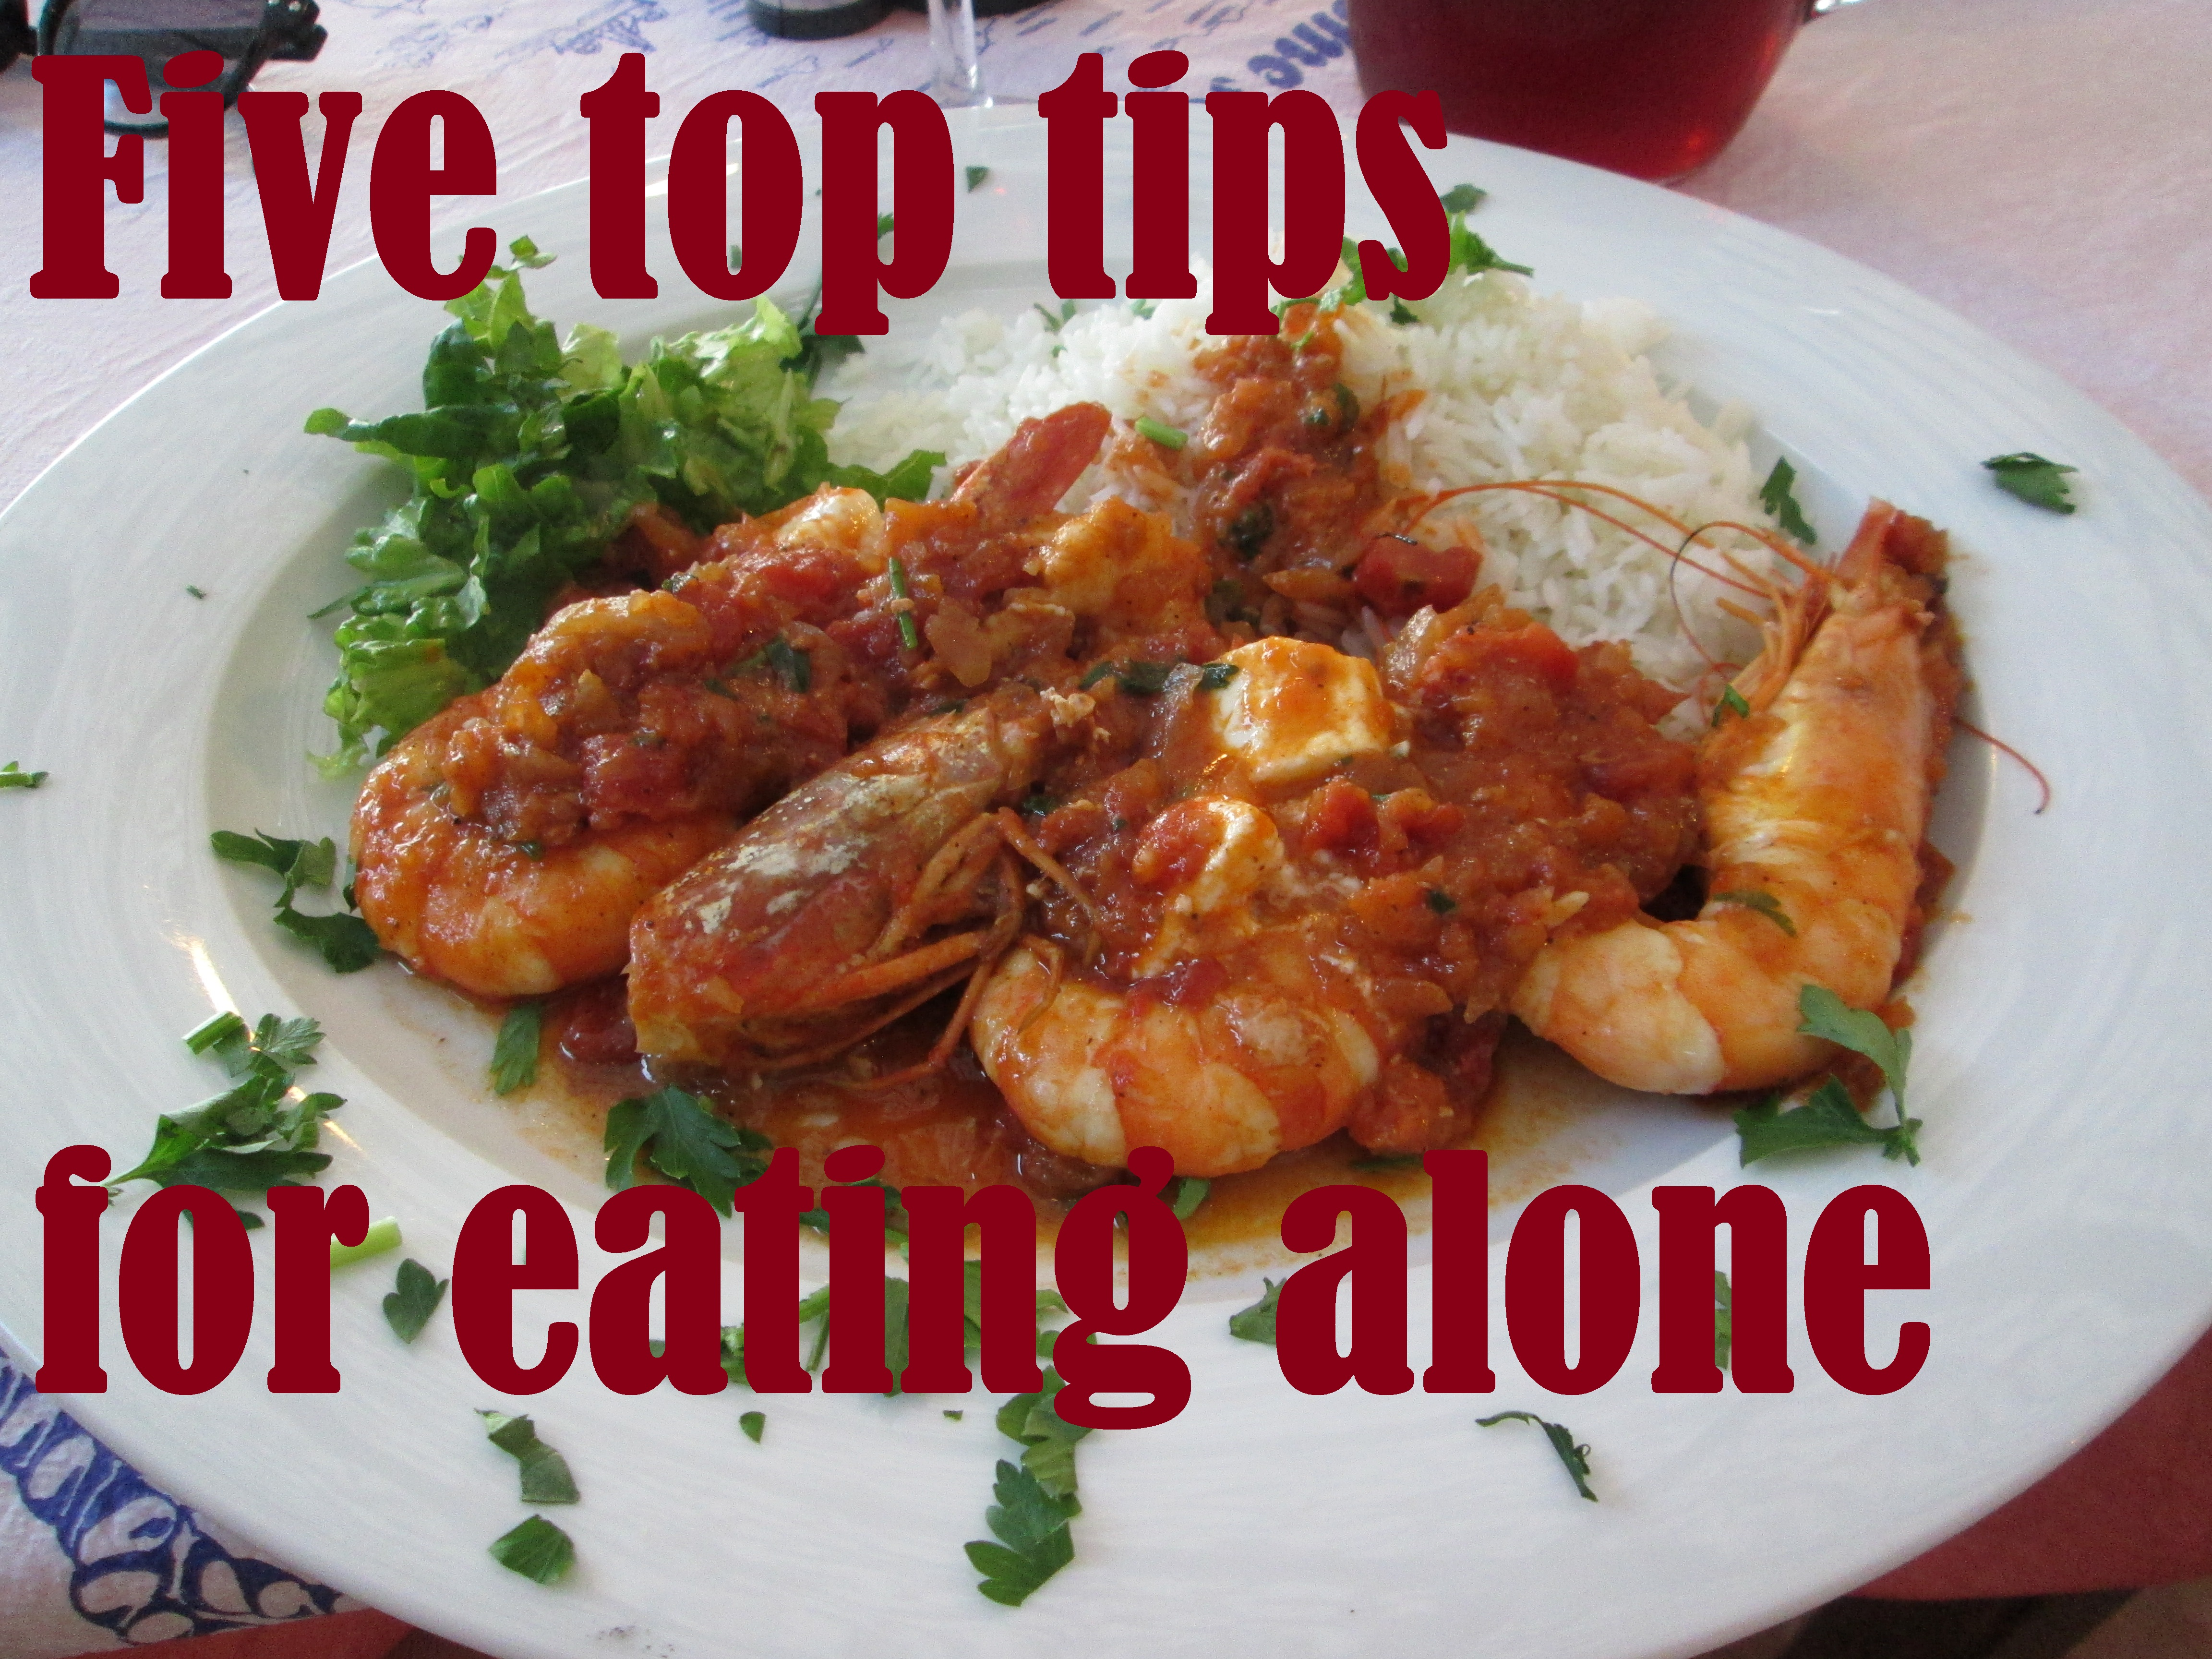 Five top tips for eating alone